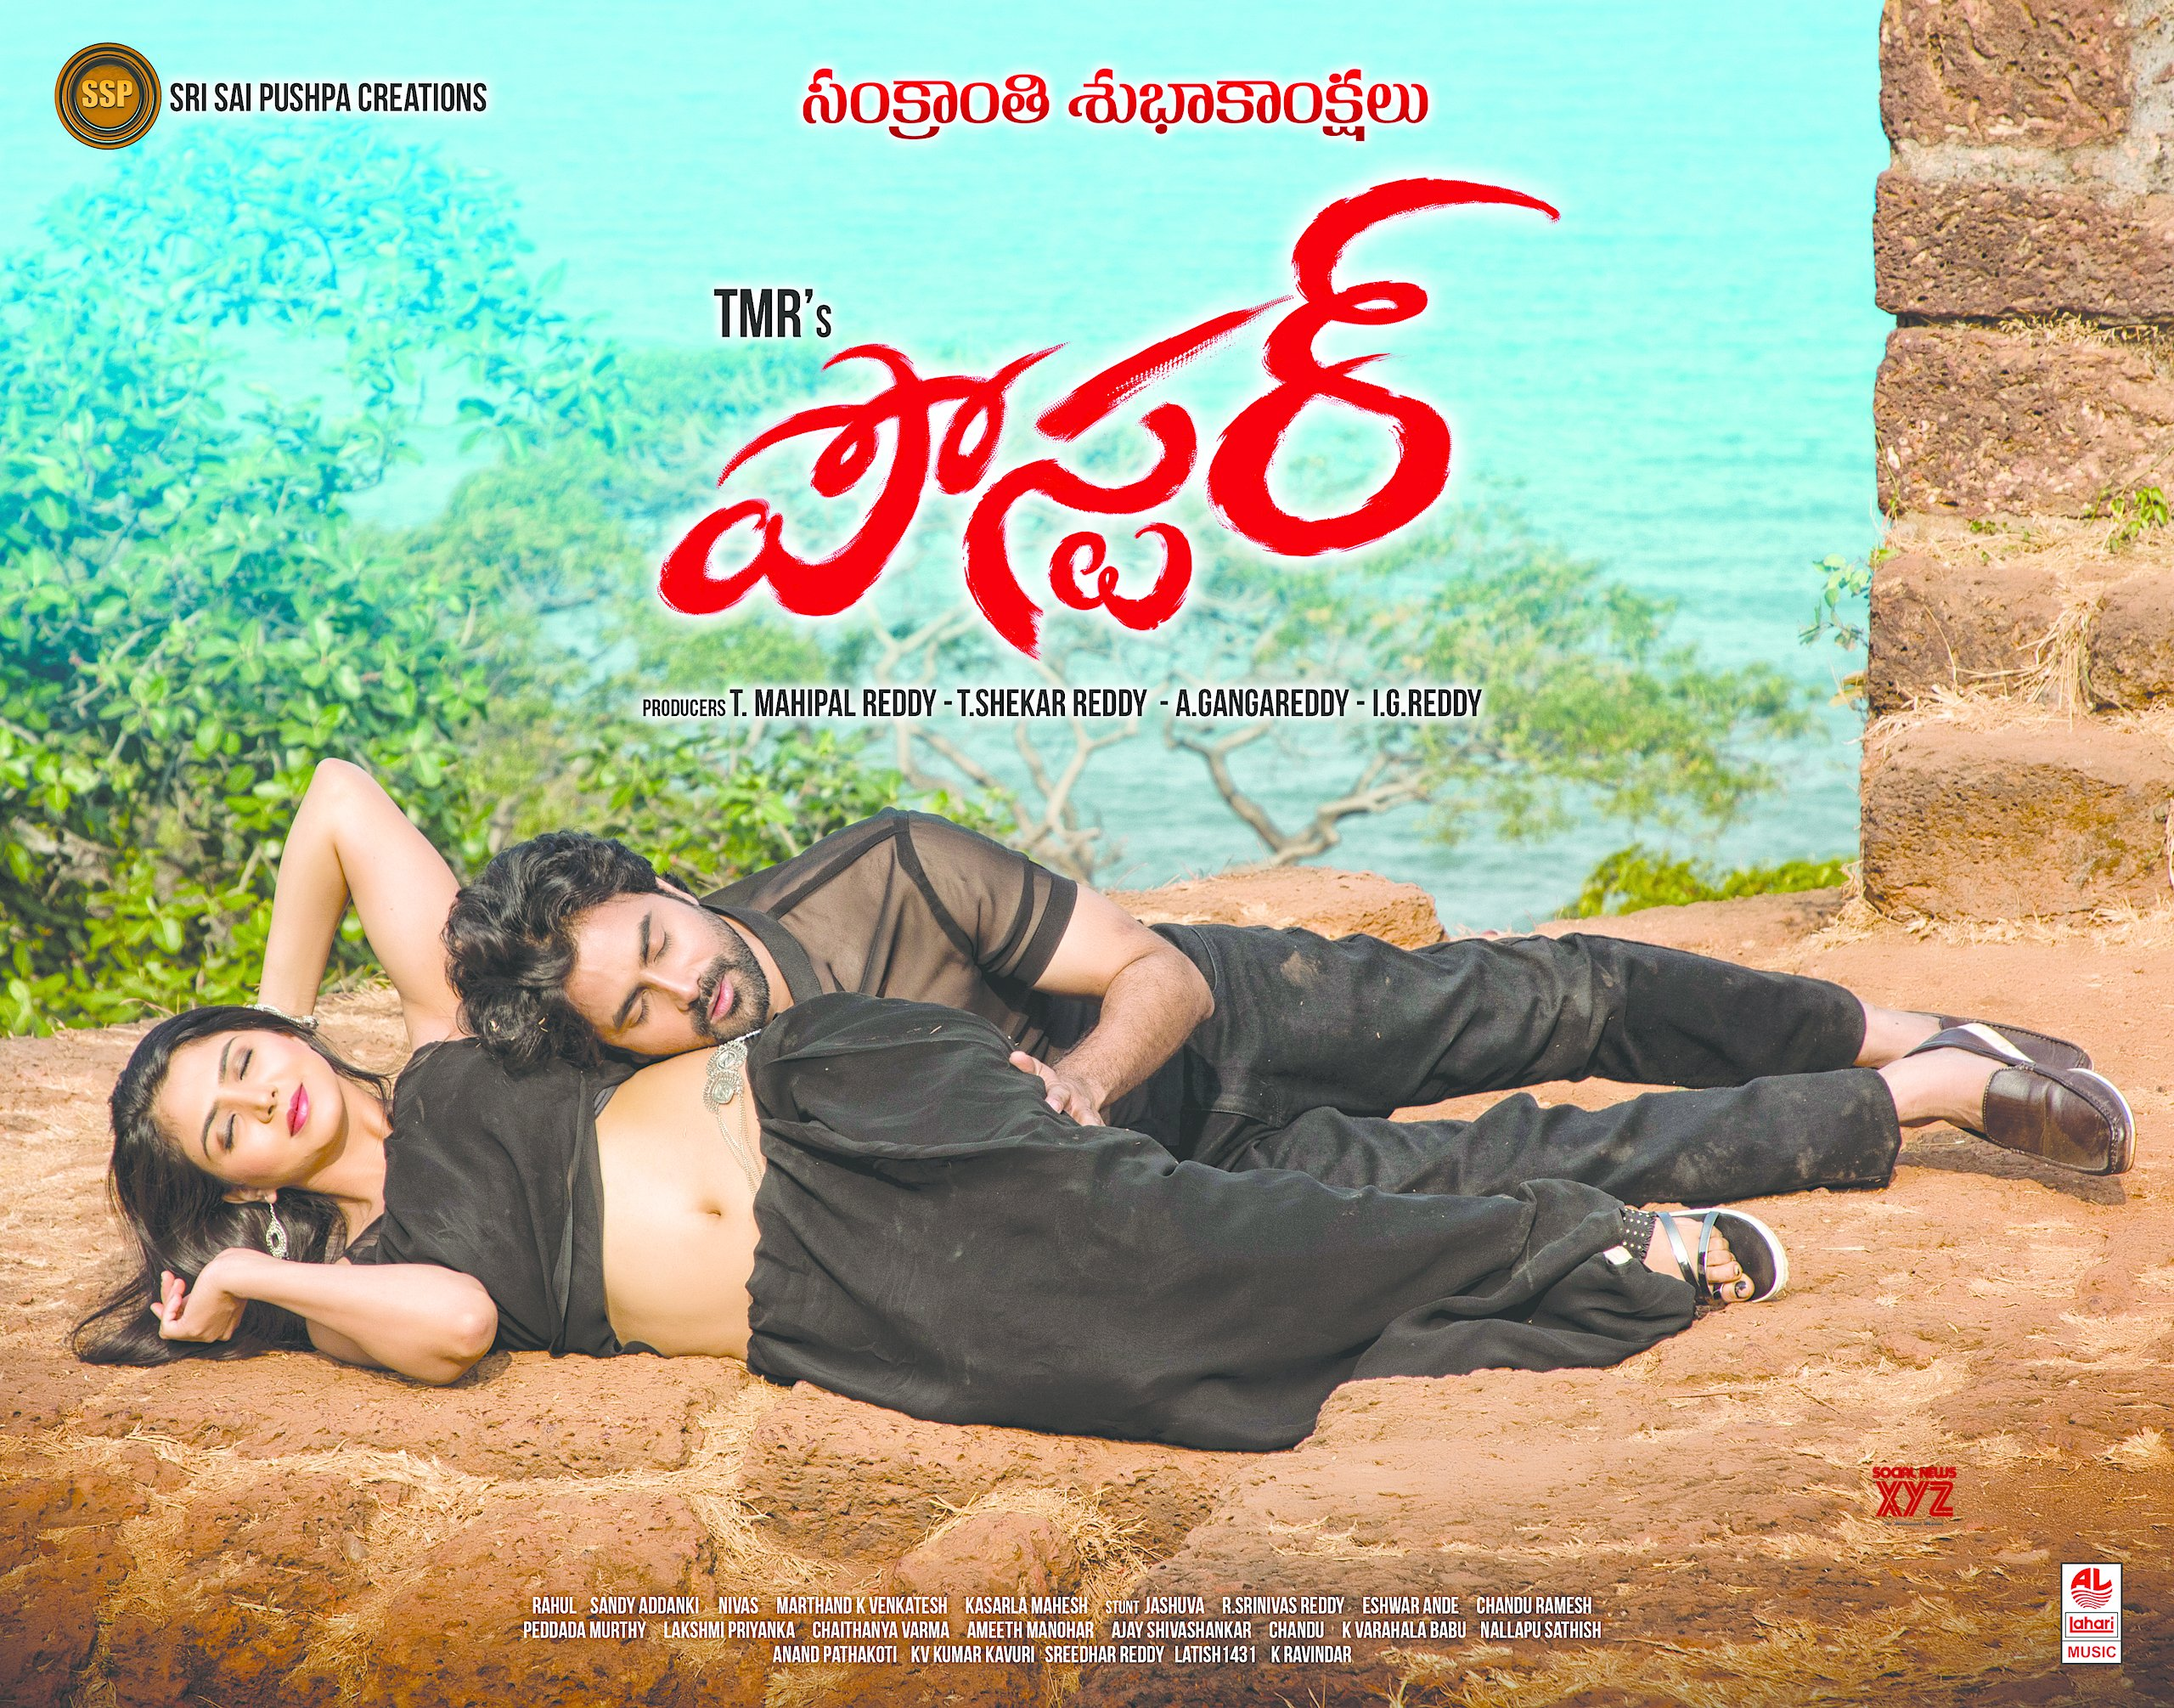 Poster Movie Ready For Release In February